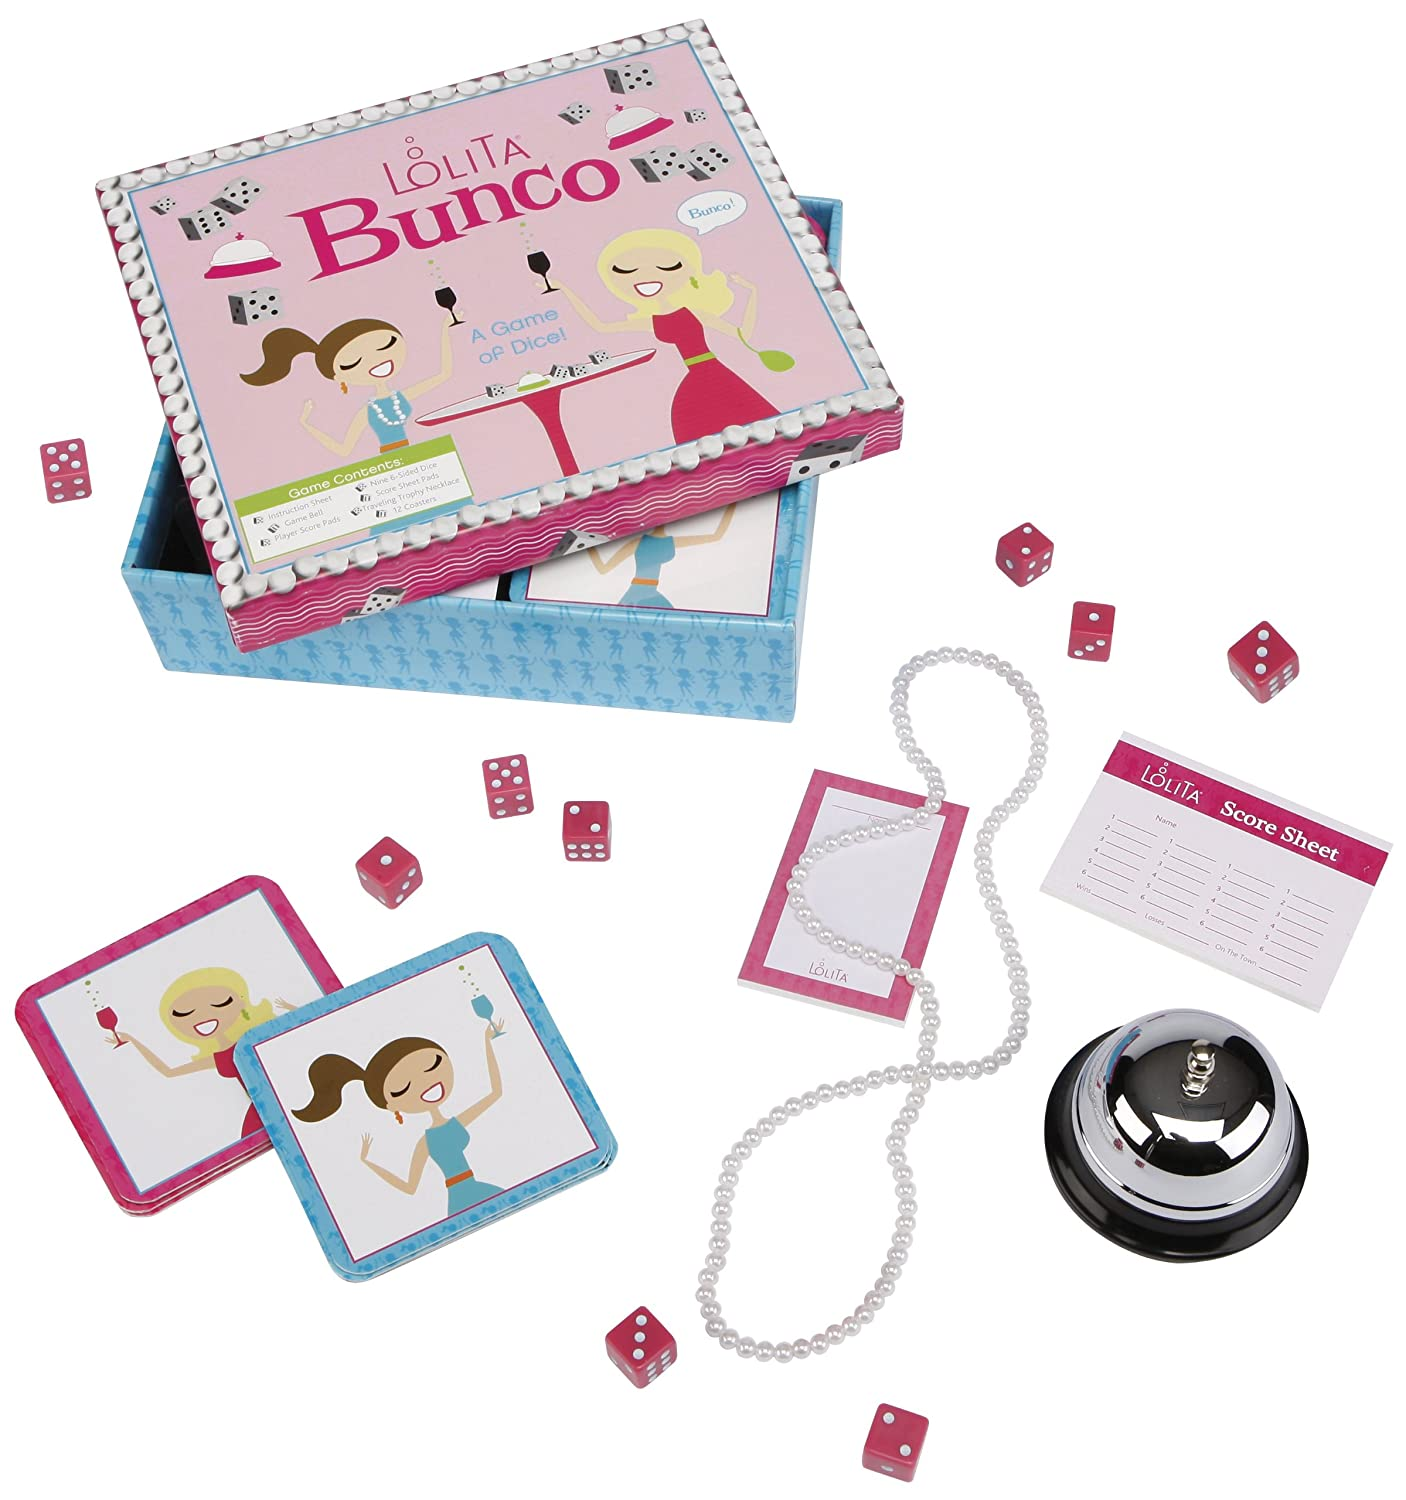 C.R. Gibson Lolita Bunco Game BDG-11242